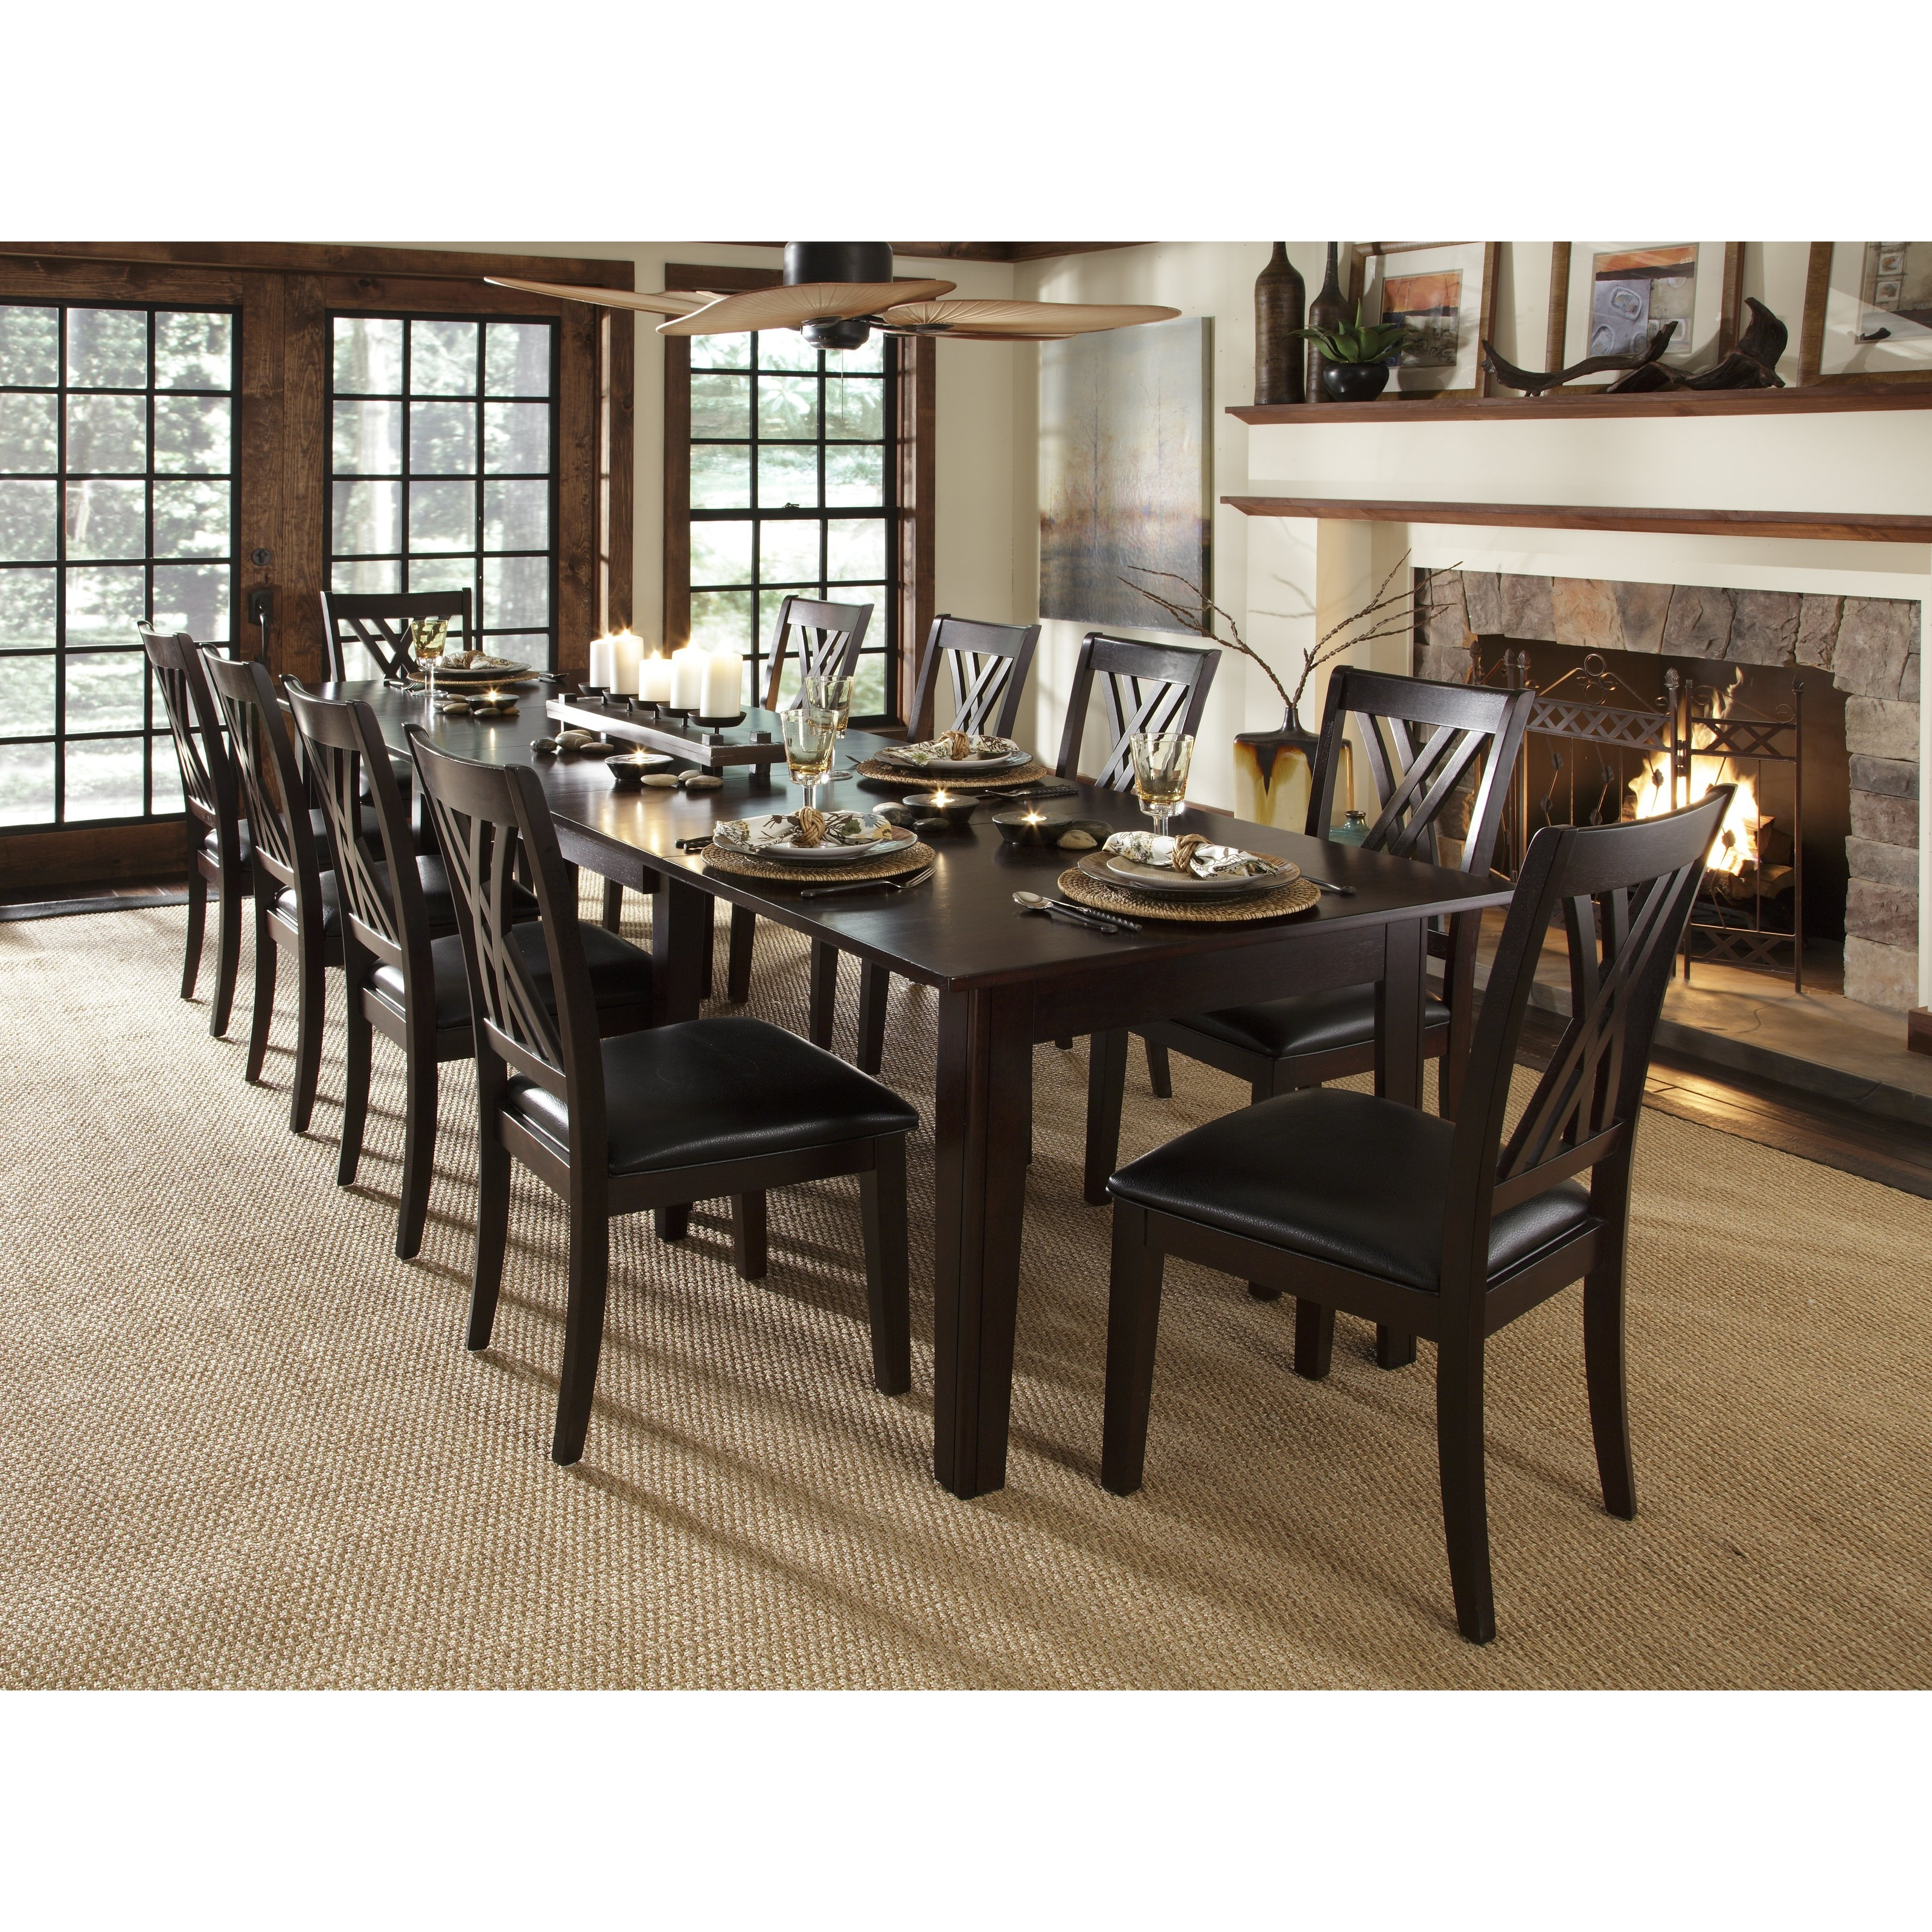 Craftsman Rectangle Extension Dining Tables With Best And Newest A America Montreal Rectangular Extension Dining Table – Espresso (View 20 of 25)